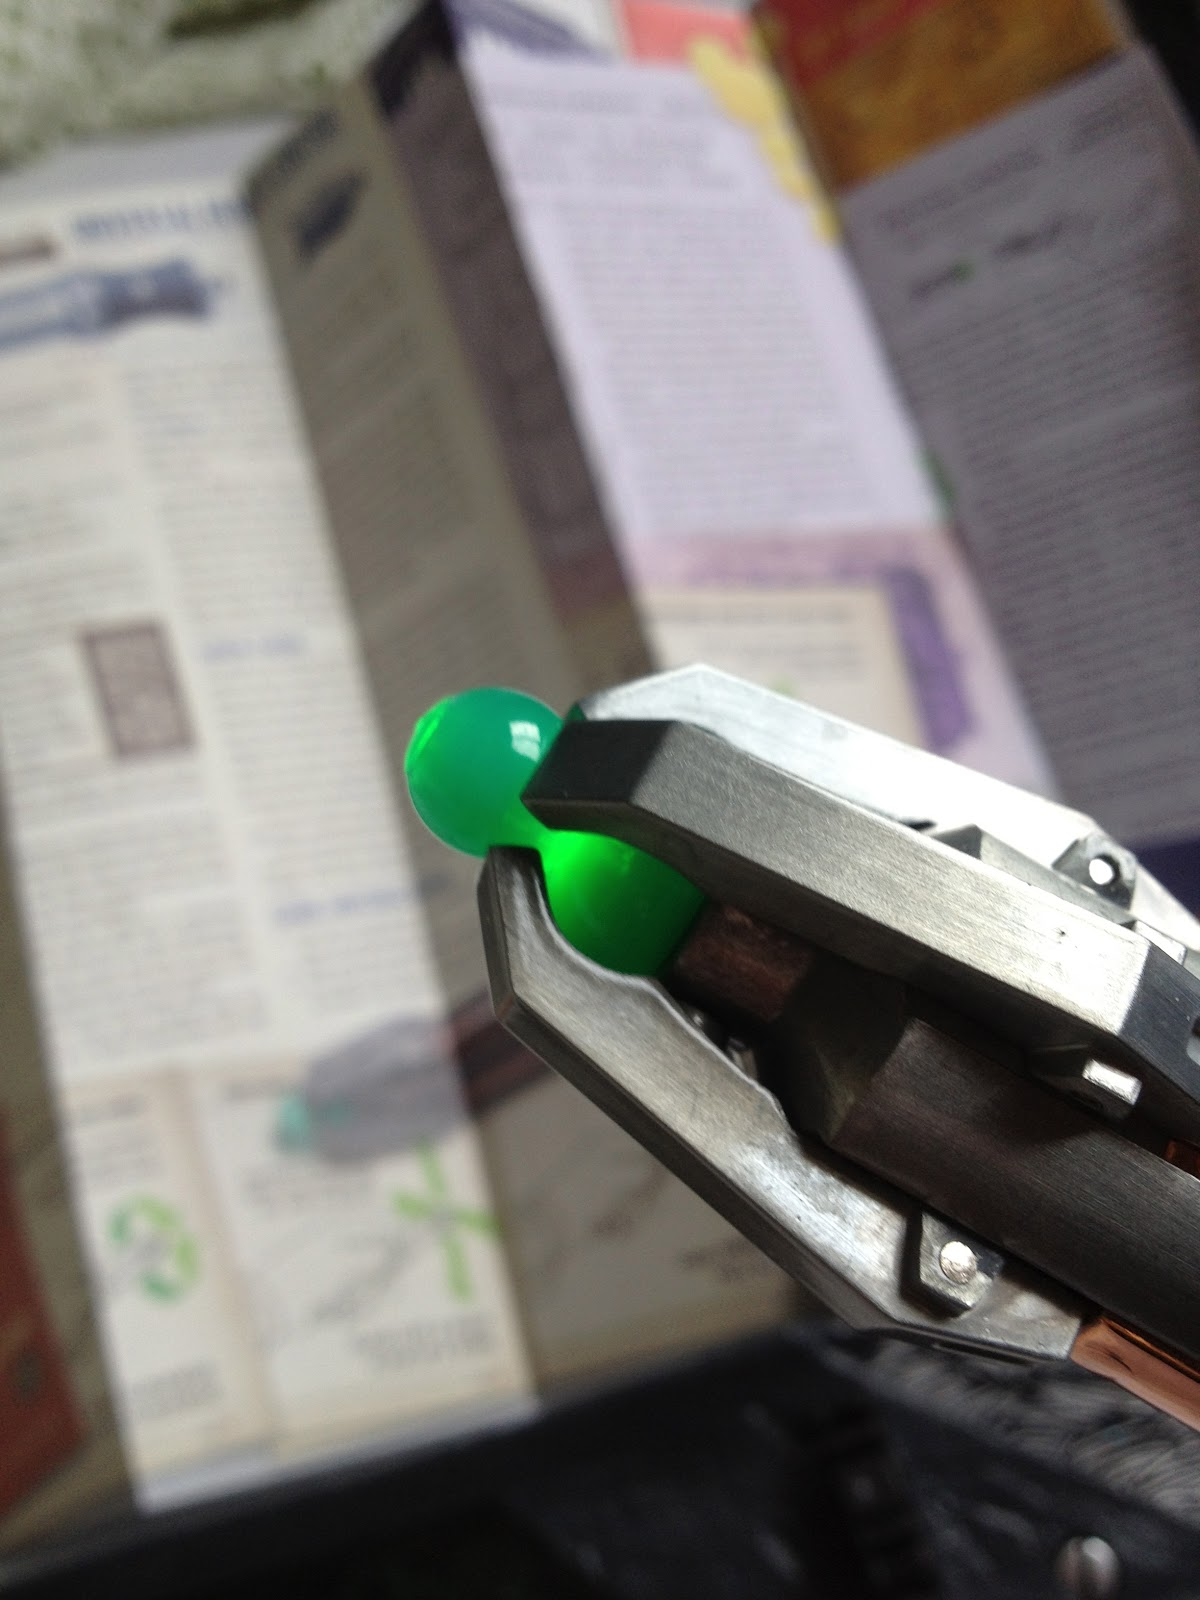 sonic screwdriver remote instructions